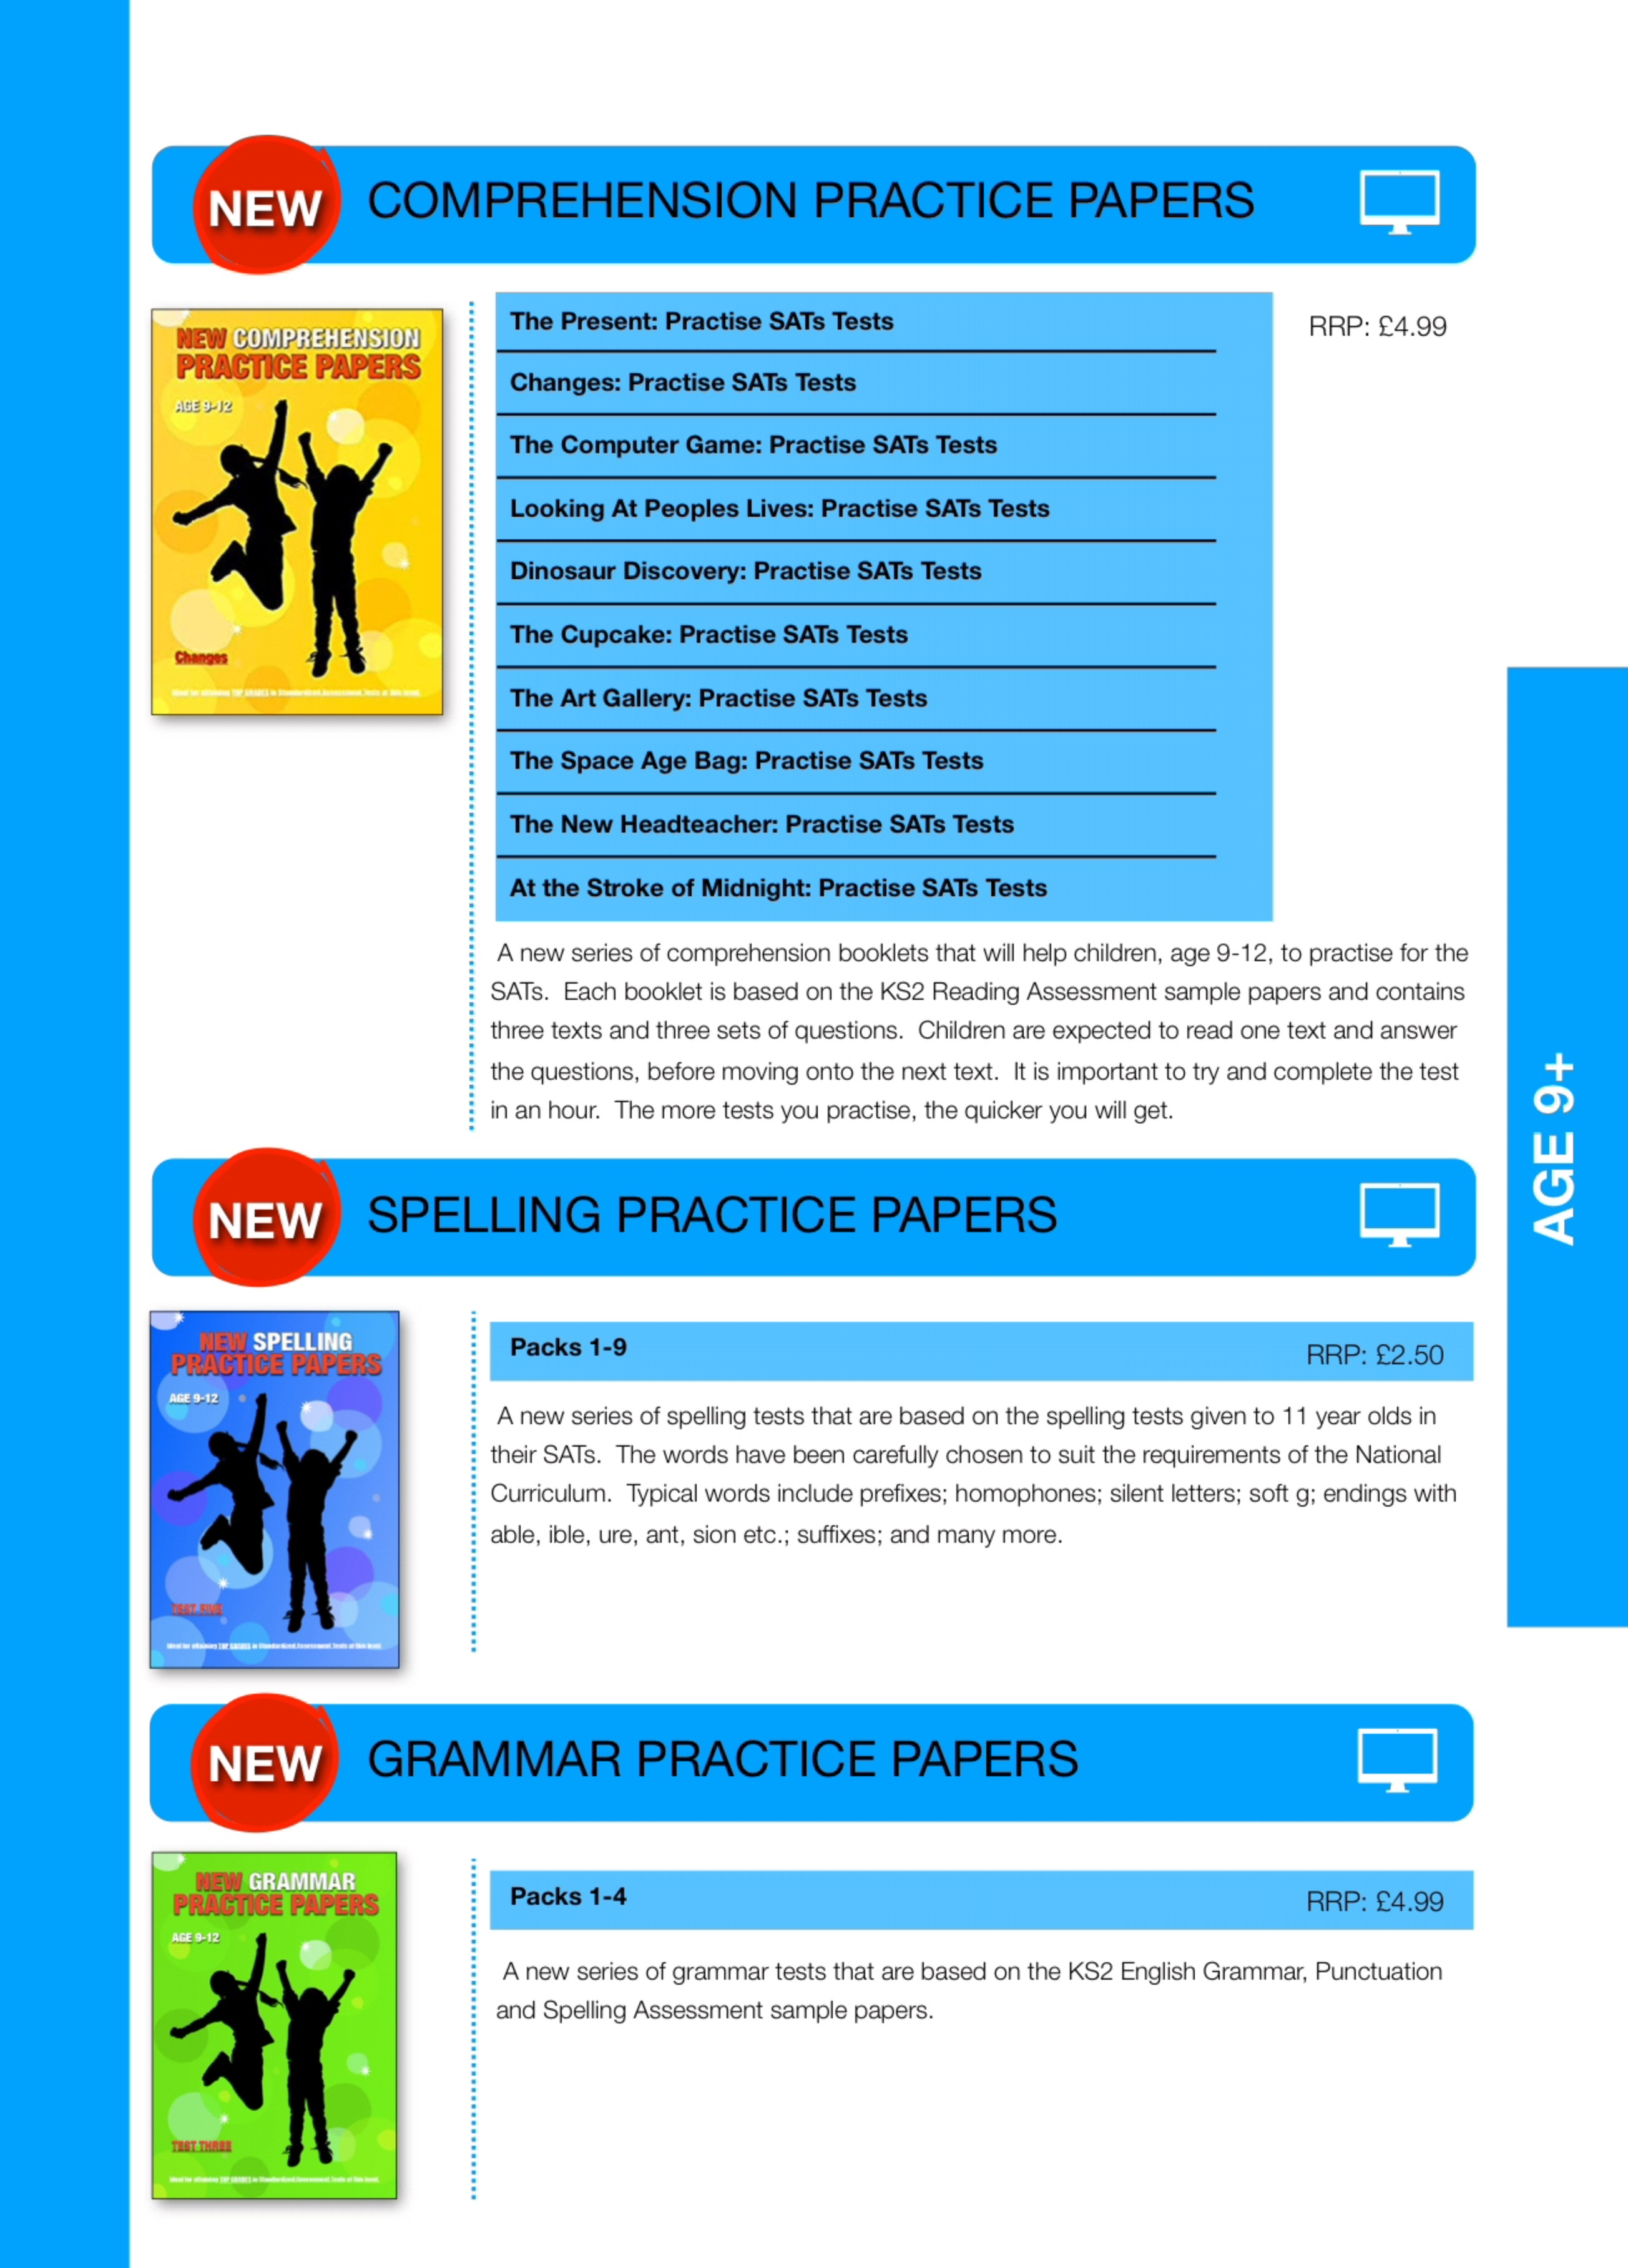 Highly Recommended: Learn Comprehension Skills 'The Computer Game' 9-12 years